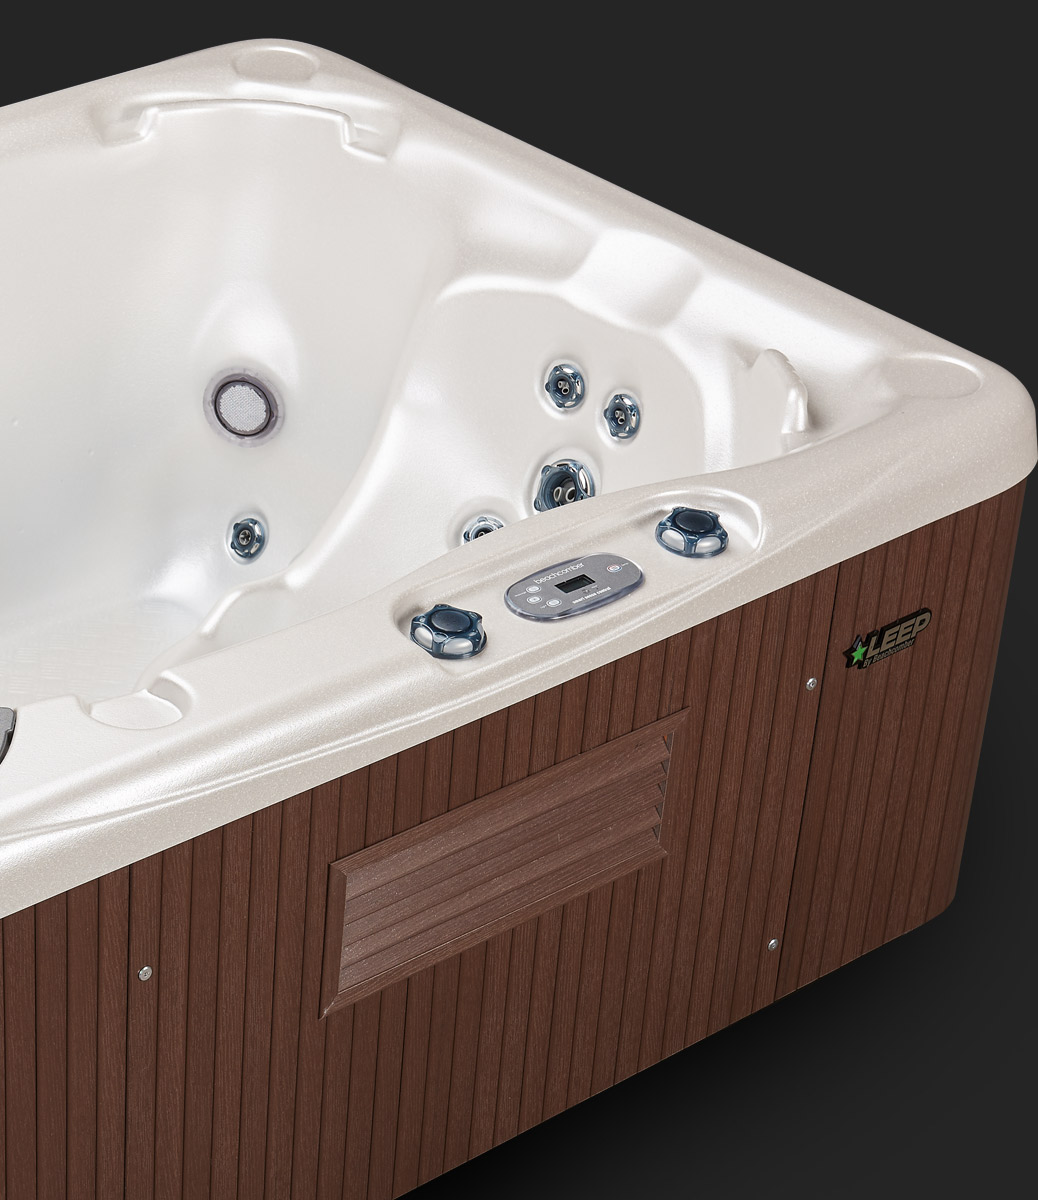 Beachcomber Hot Tubs Modèle 520